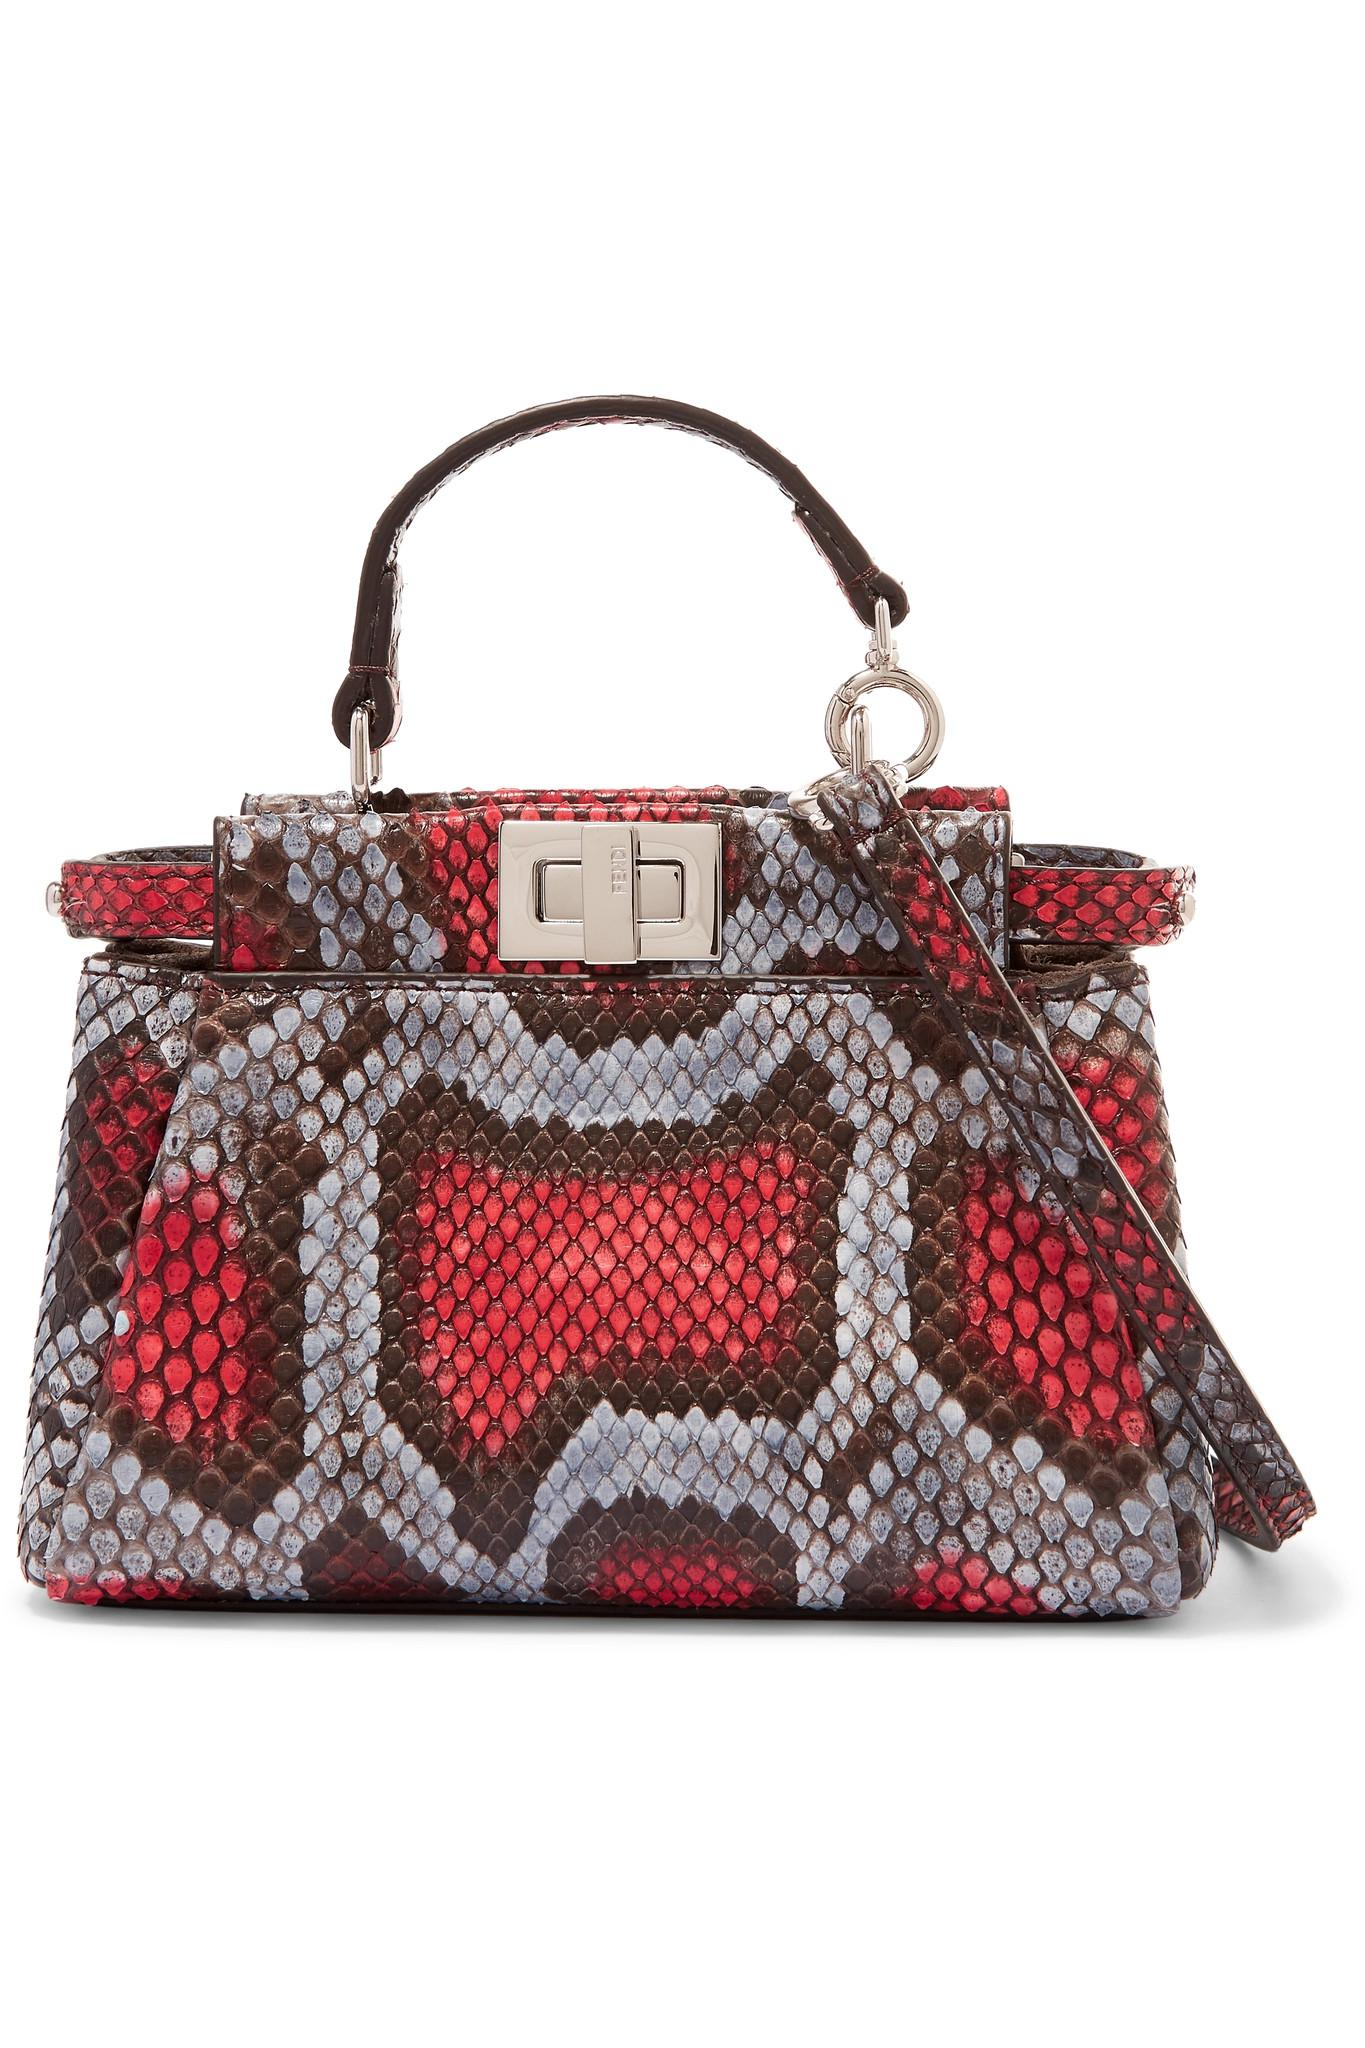 Lyst - Fendi Peekaboo Micro Python Shoulder Bag in Red c038e7f83b042